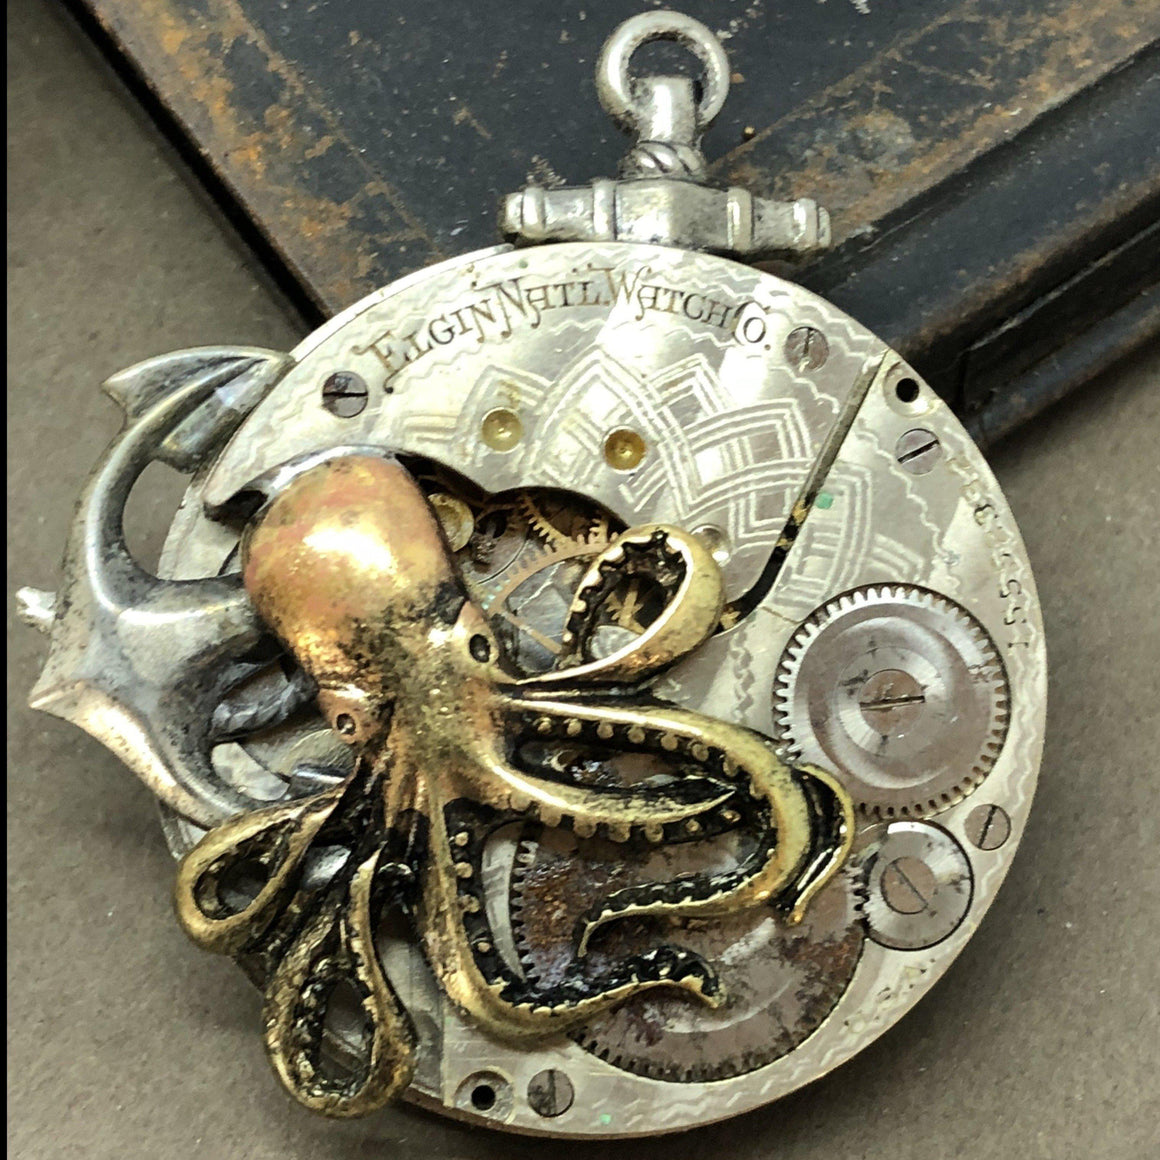 Brice octopus watch necklace